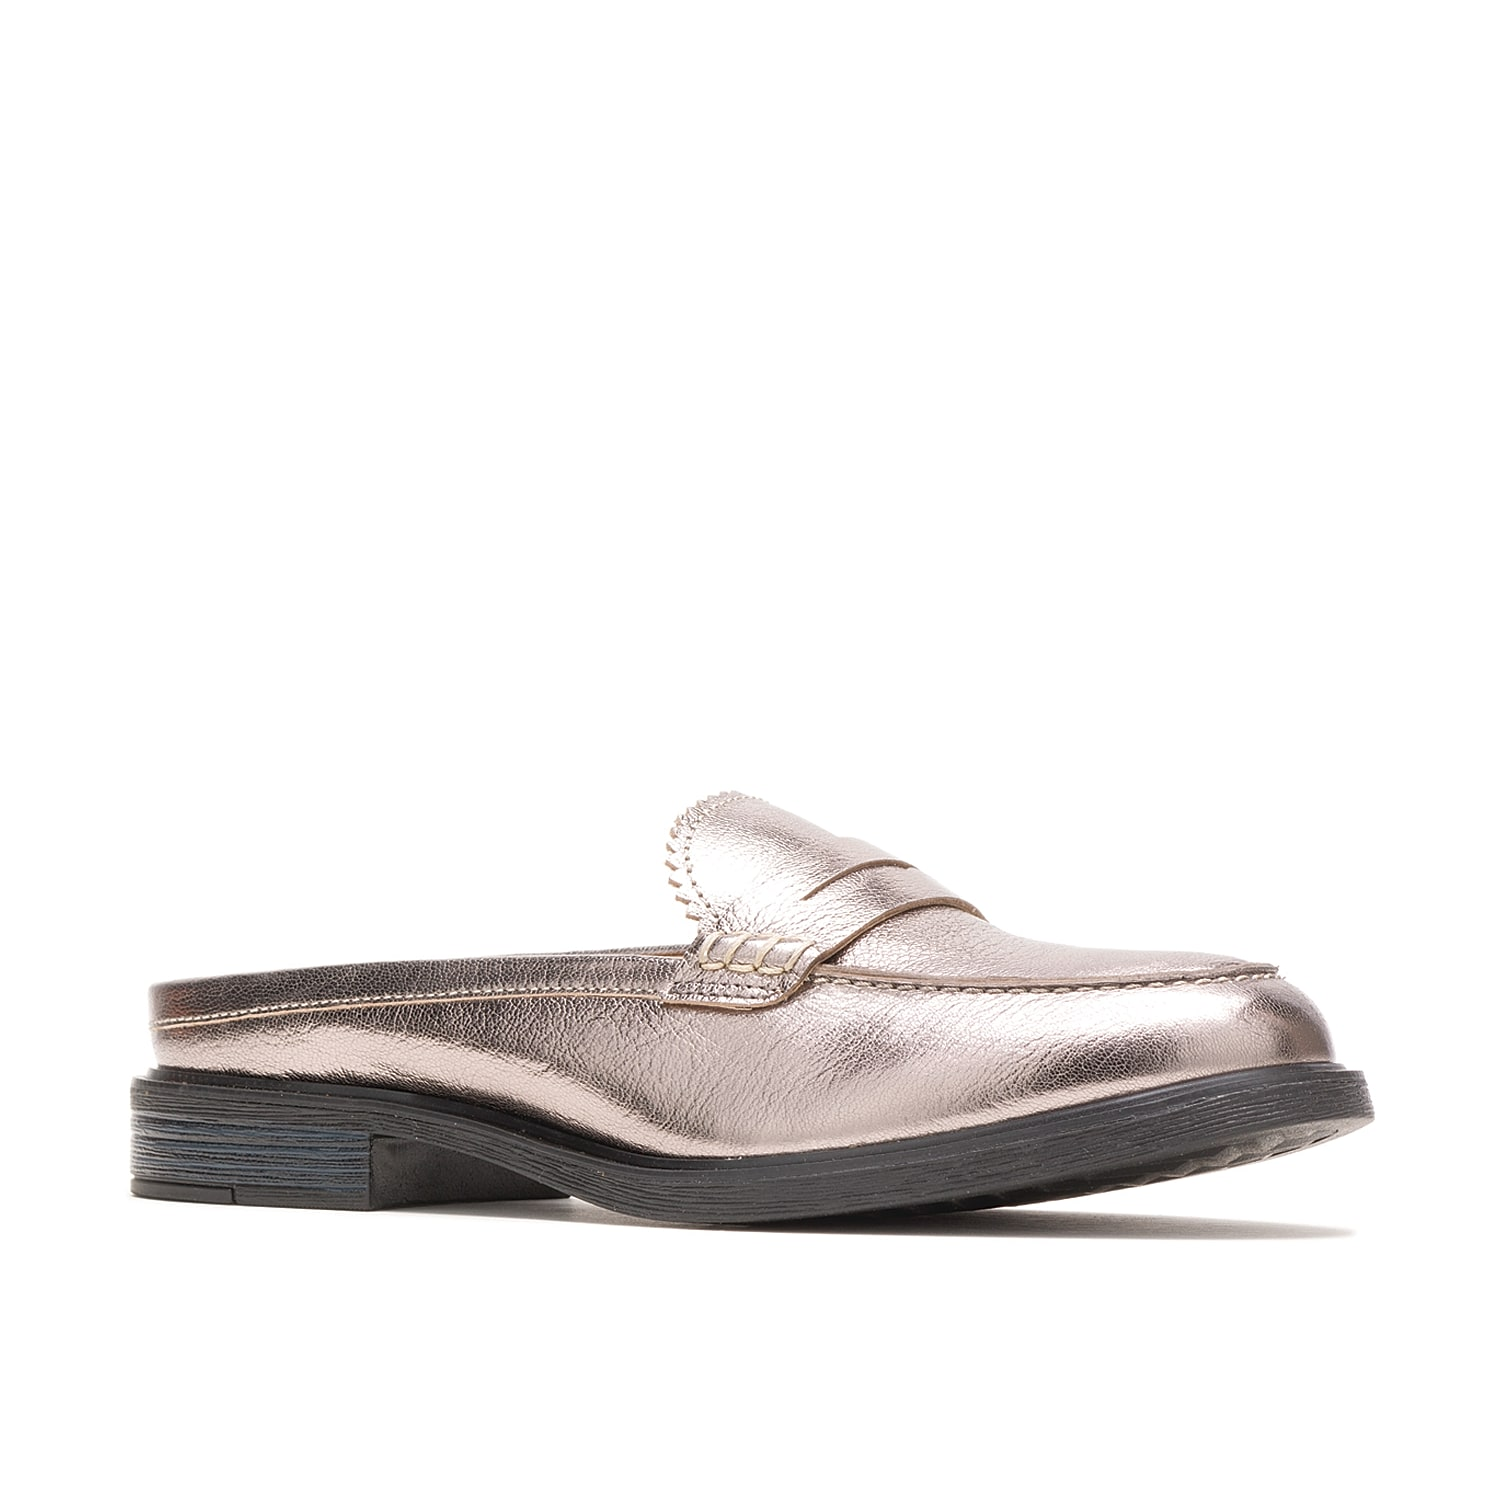 Get the convenience and class you\\\'ve wanted from the Hush Puppies Bailey mule. Designed with crafty penny moc stitches and a striking metallic finish, this slip-on has a Bounce¿ footbed for high responsiveness and breathable fabric lining to pamper your foot.